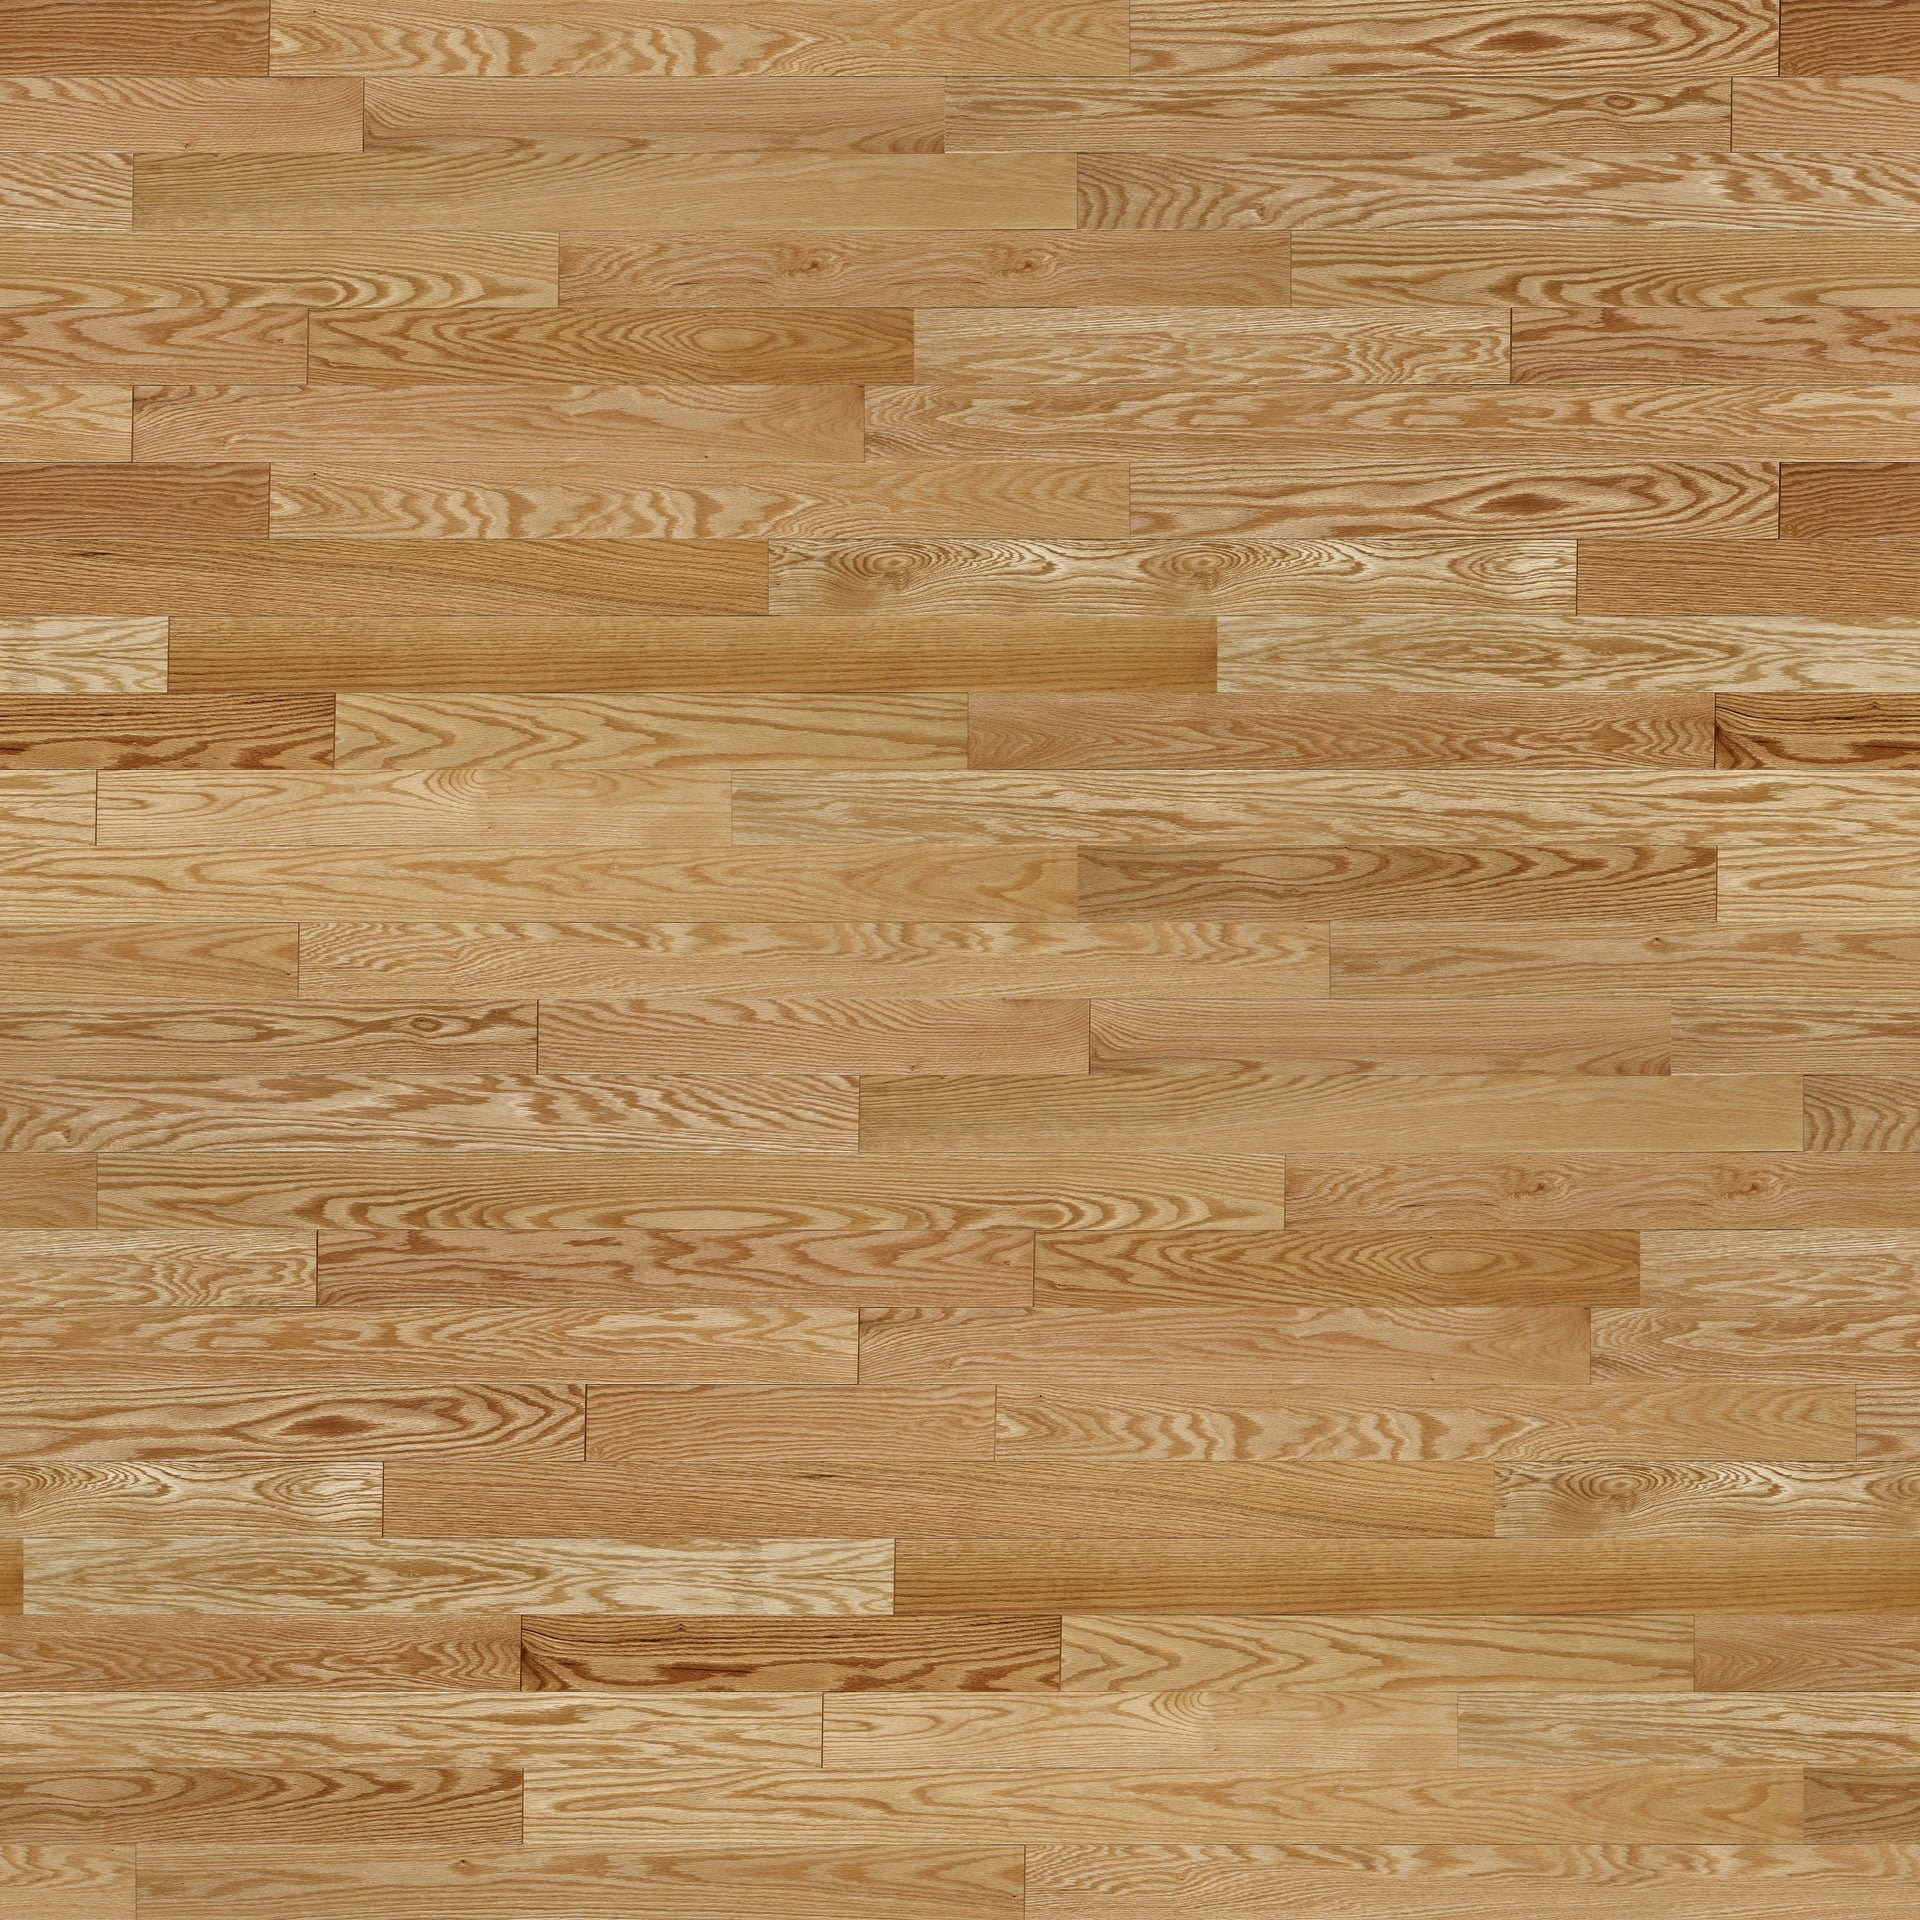 Appalachian signature red oak natural prestige aa floors for Natural red oak floors